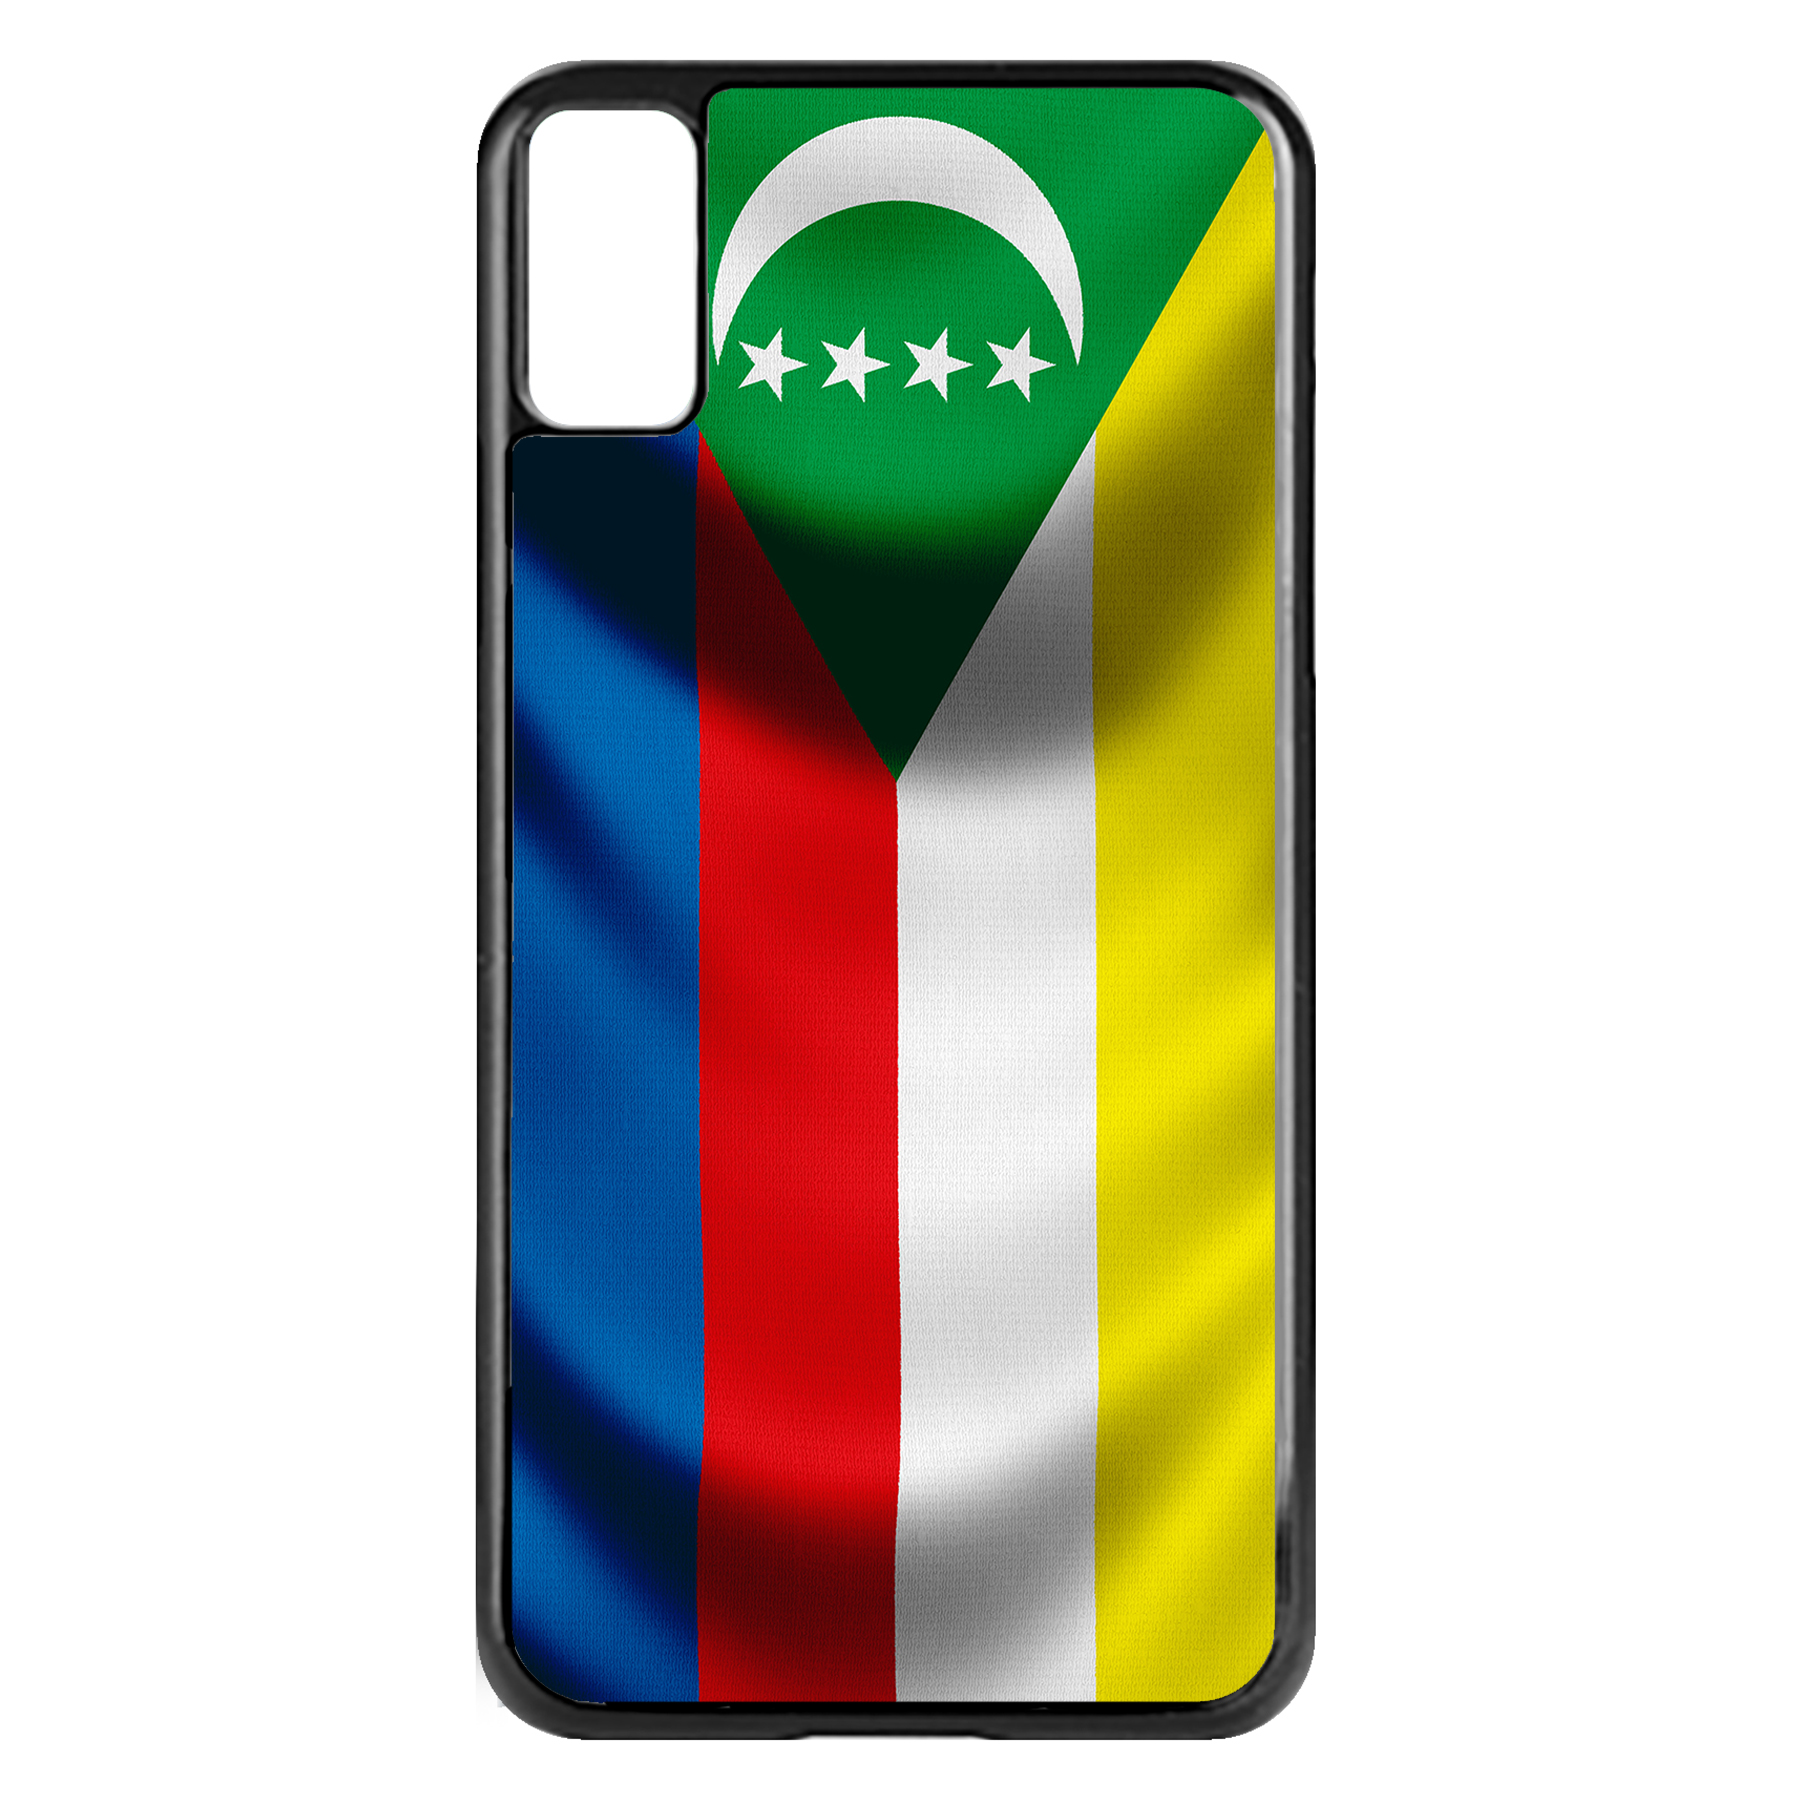 Apple-iPhone-Case-with-Flag-of-Comoros-Comorian-Many-Design-Options thumbnail 26